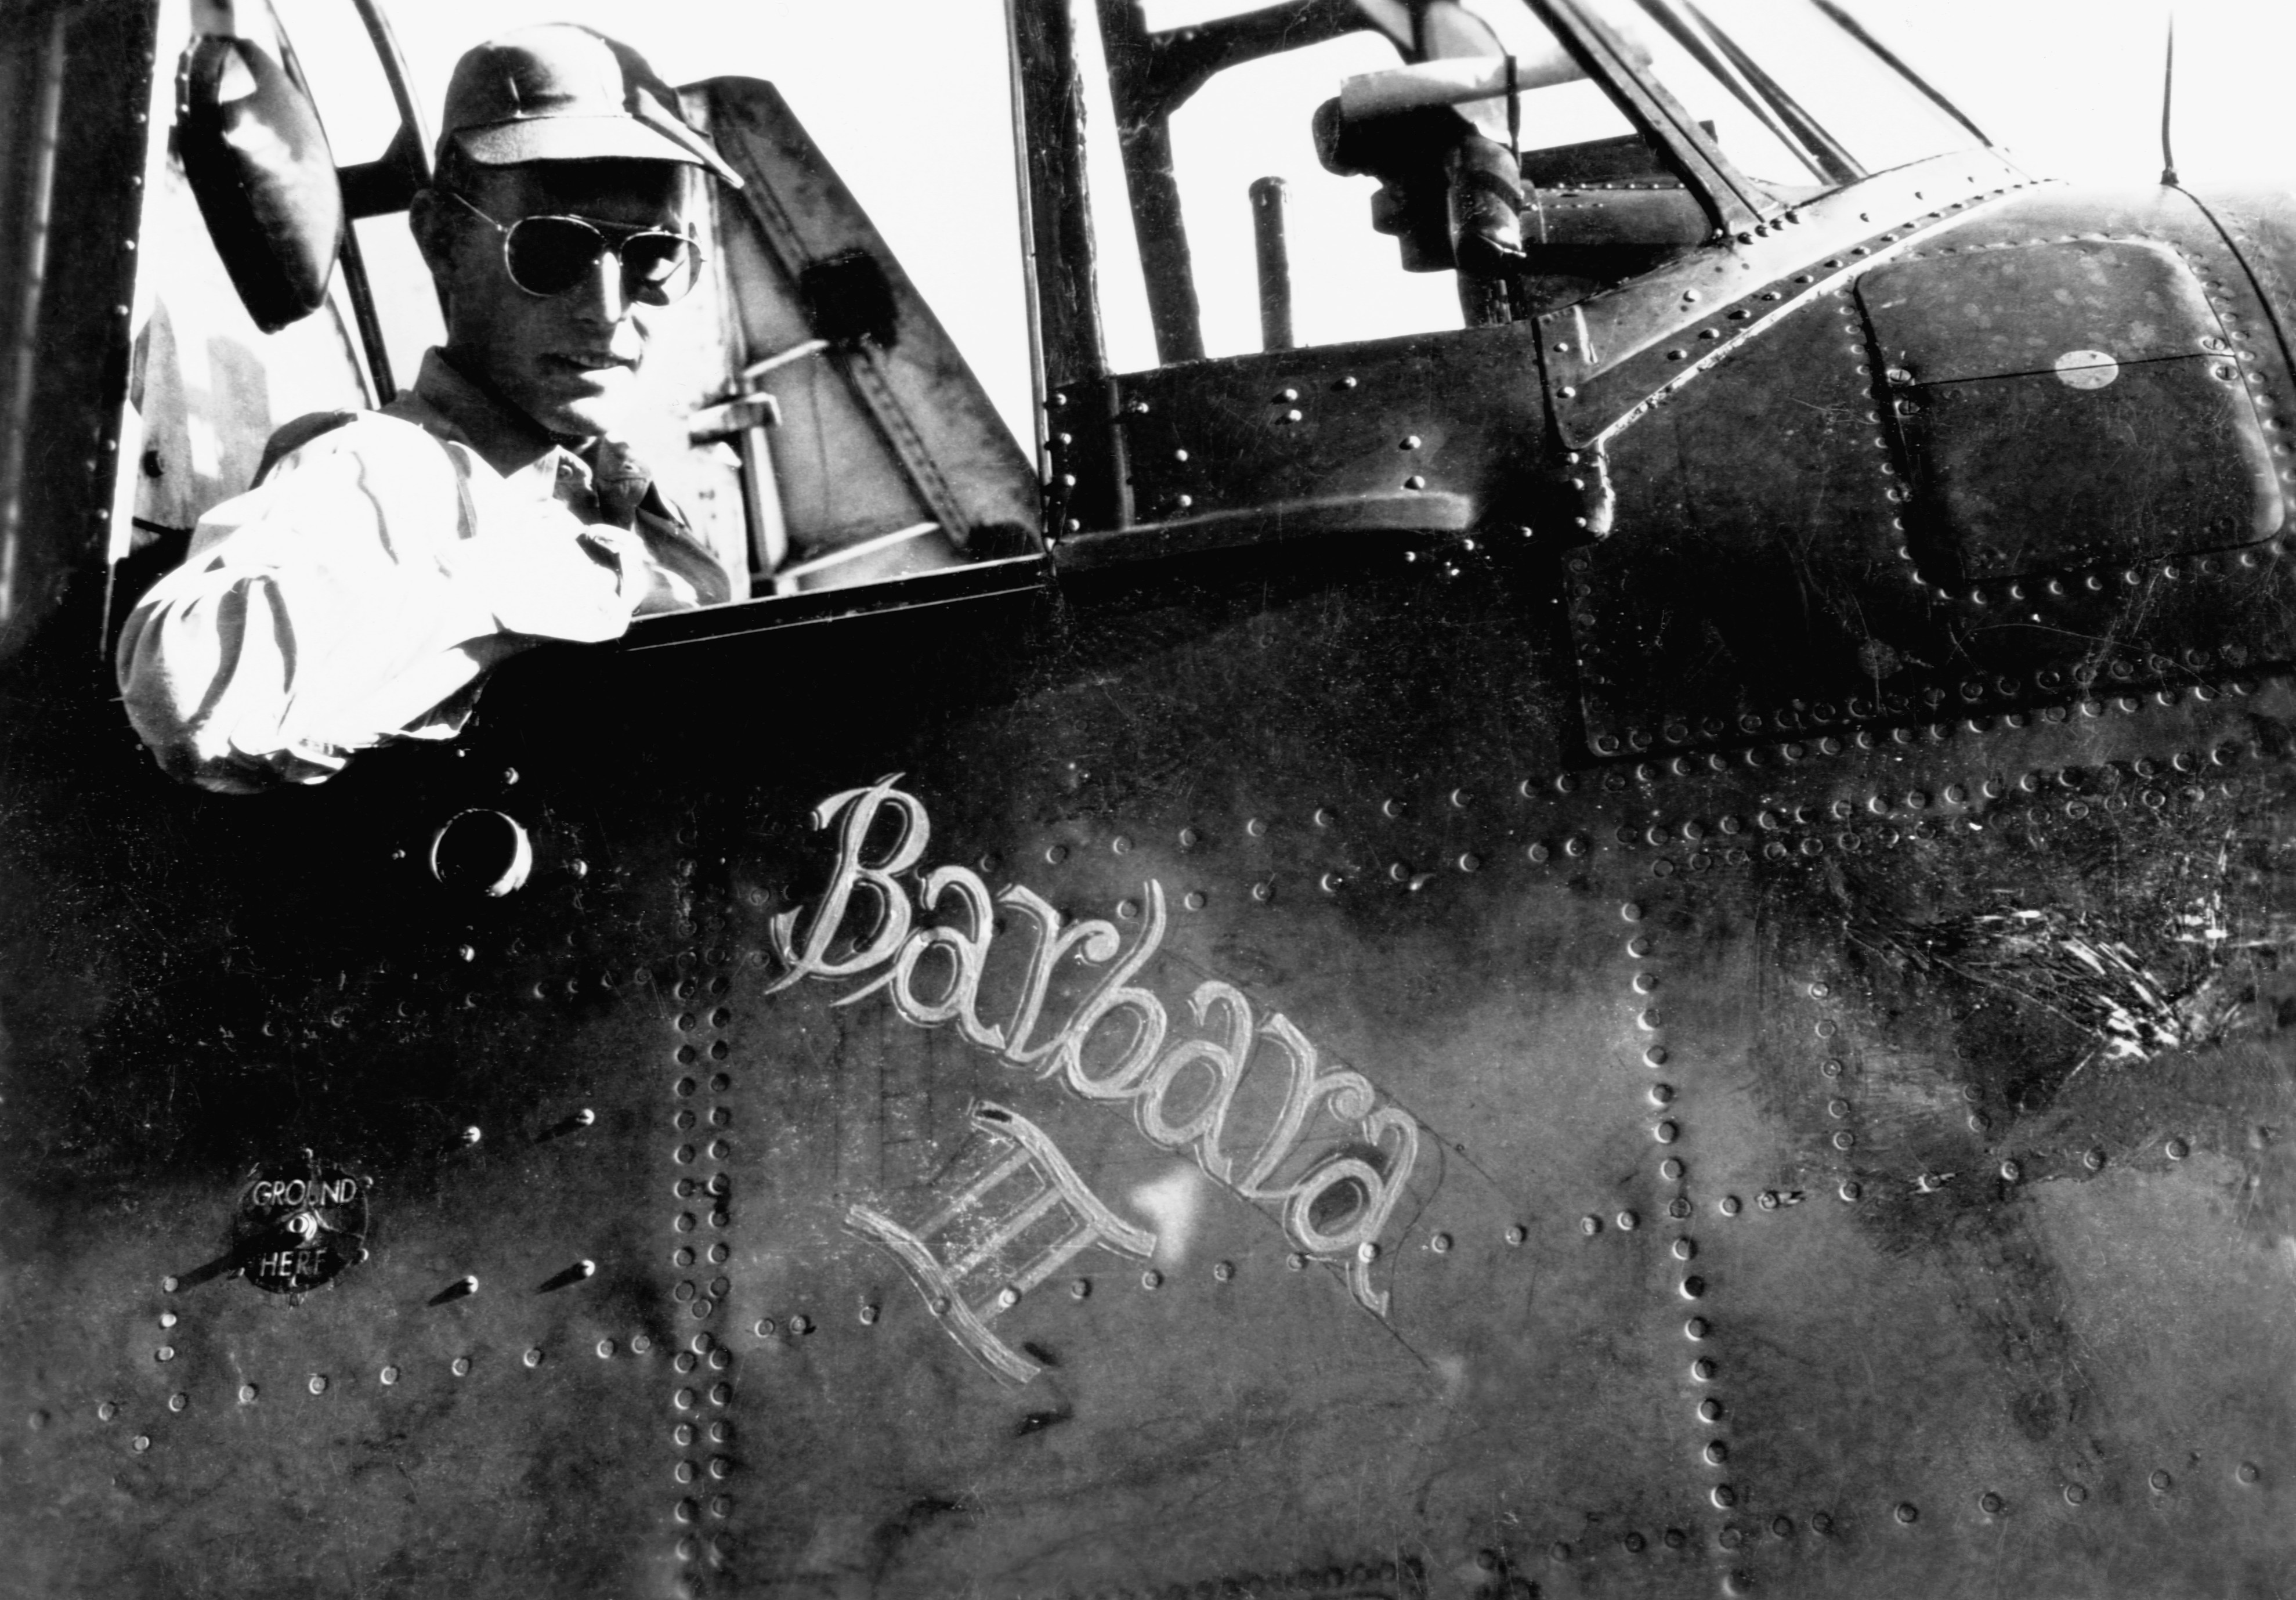 """U.S. Navy pilot George H.W. Bush sits in the cockpit of his torpedo bomber """"Barbara III"""", named after his girlfriend and future wife Barara Pierce. Bush was in the navy from 1943-1945."""